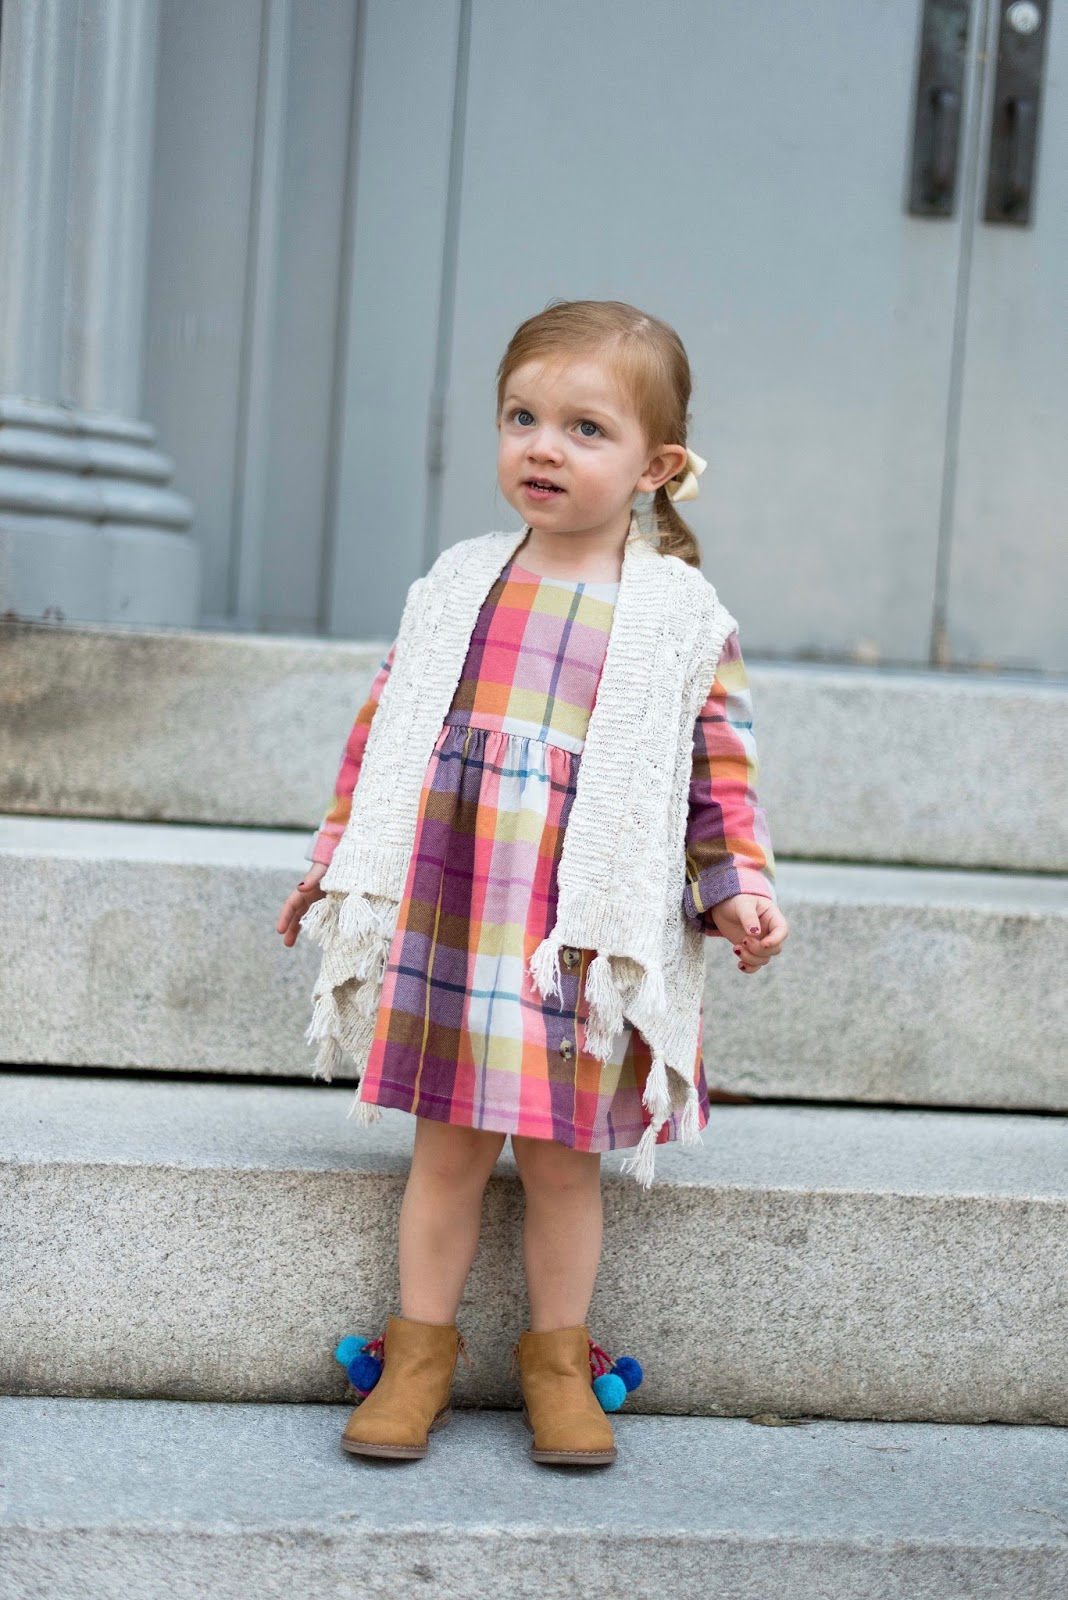 Toddler Fashion: Plaid Flannel Dress + Tassel Vest - Something Delightful Blog